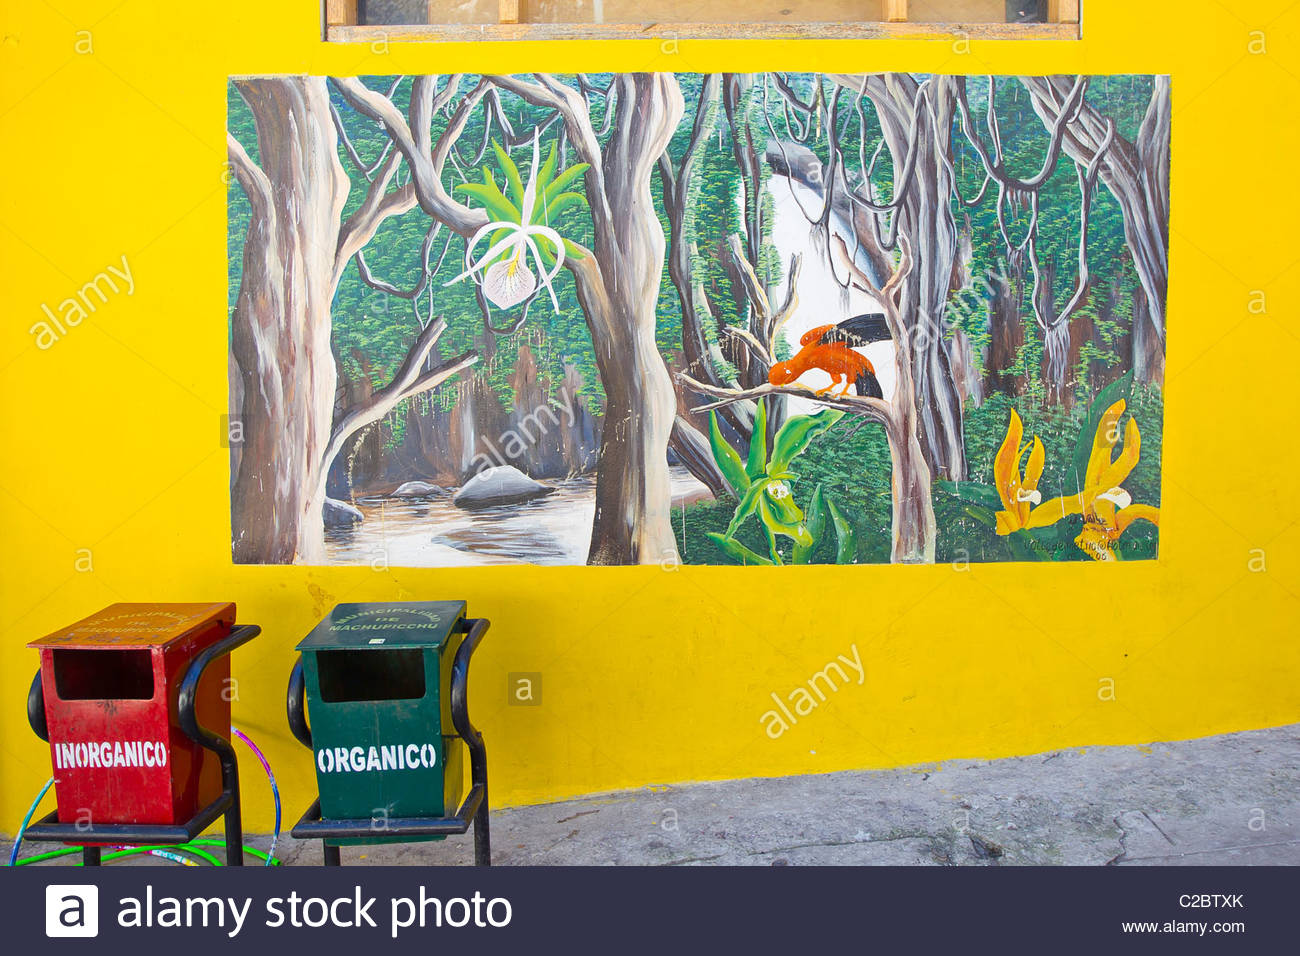 A mural painting of a rainforest scene with trash cans in front. - Stock Image